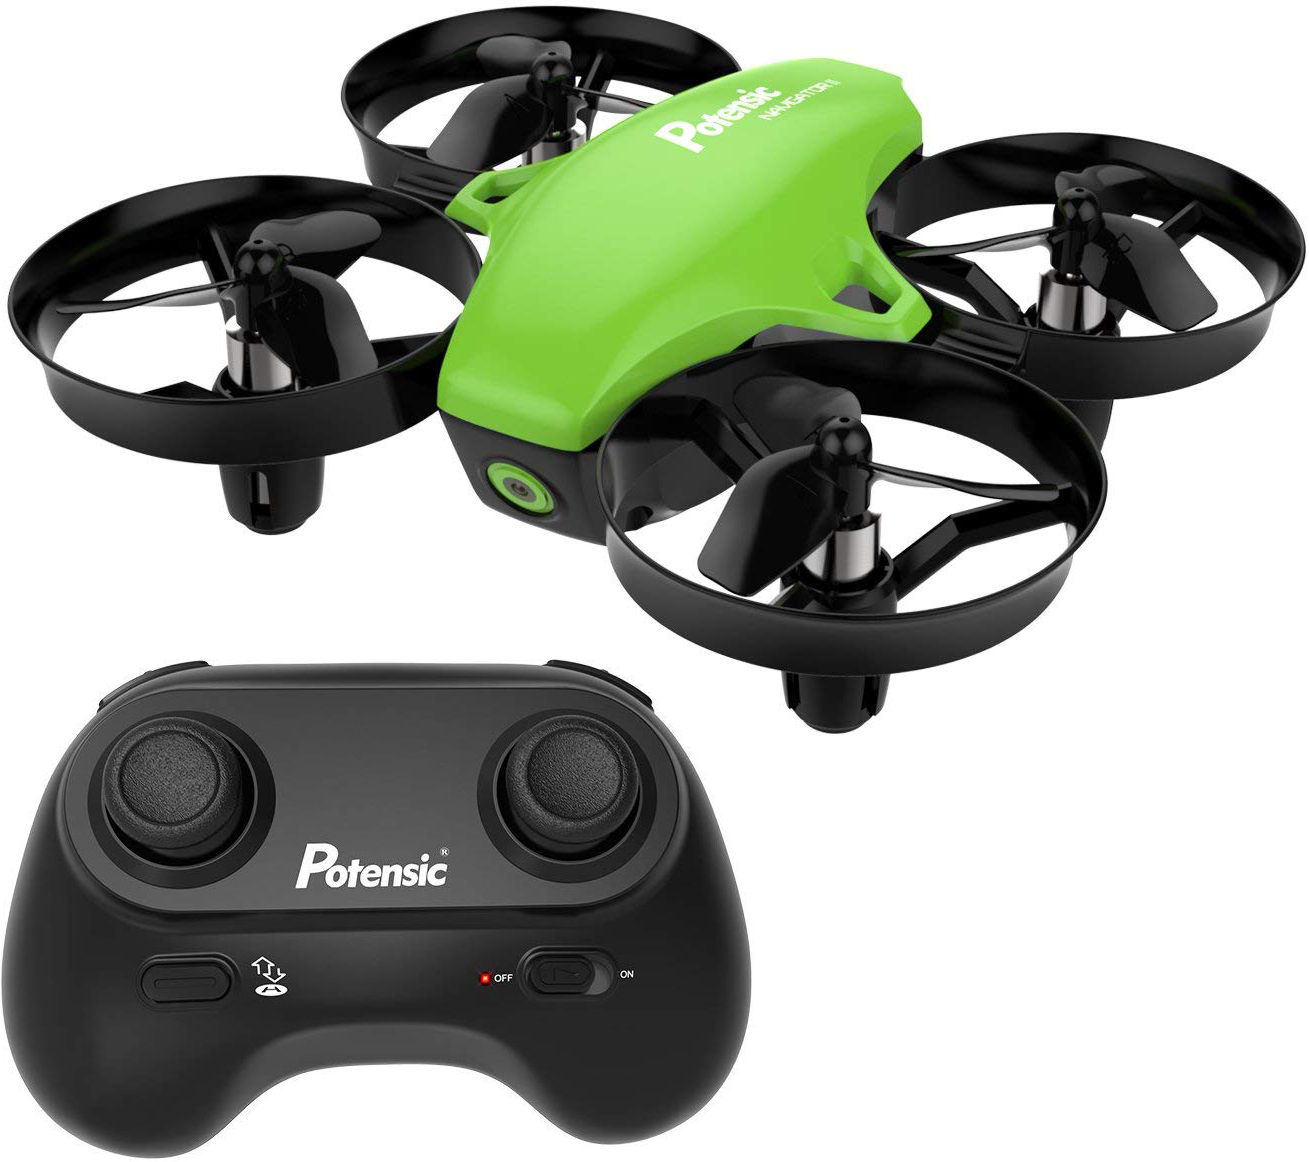 potensic-mini-drone-press.jpg